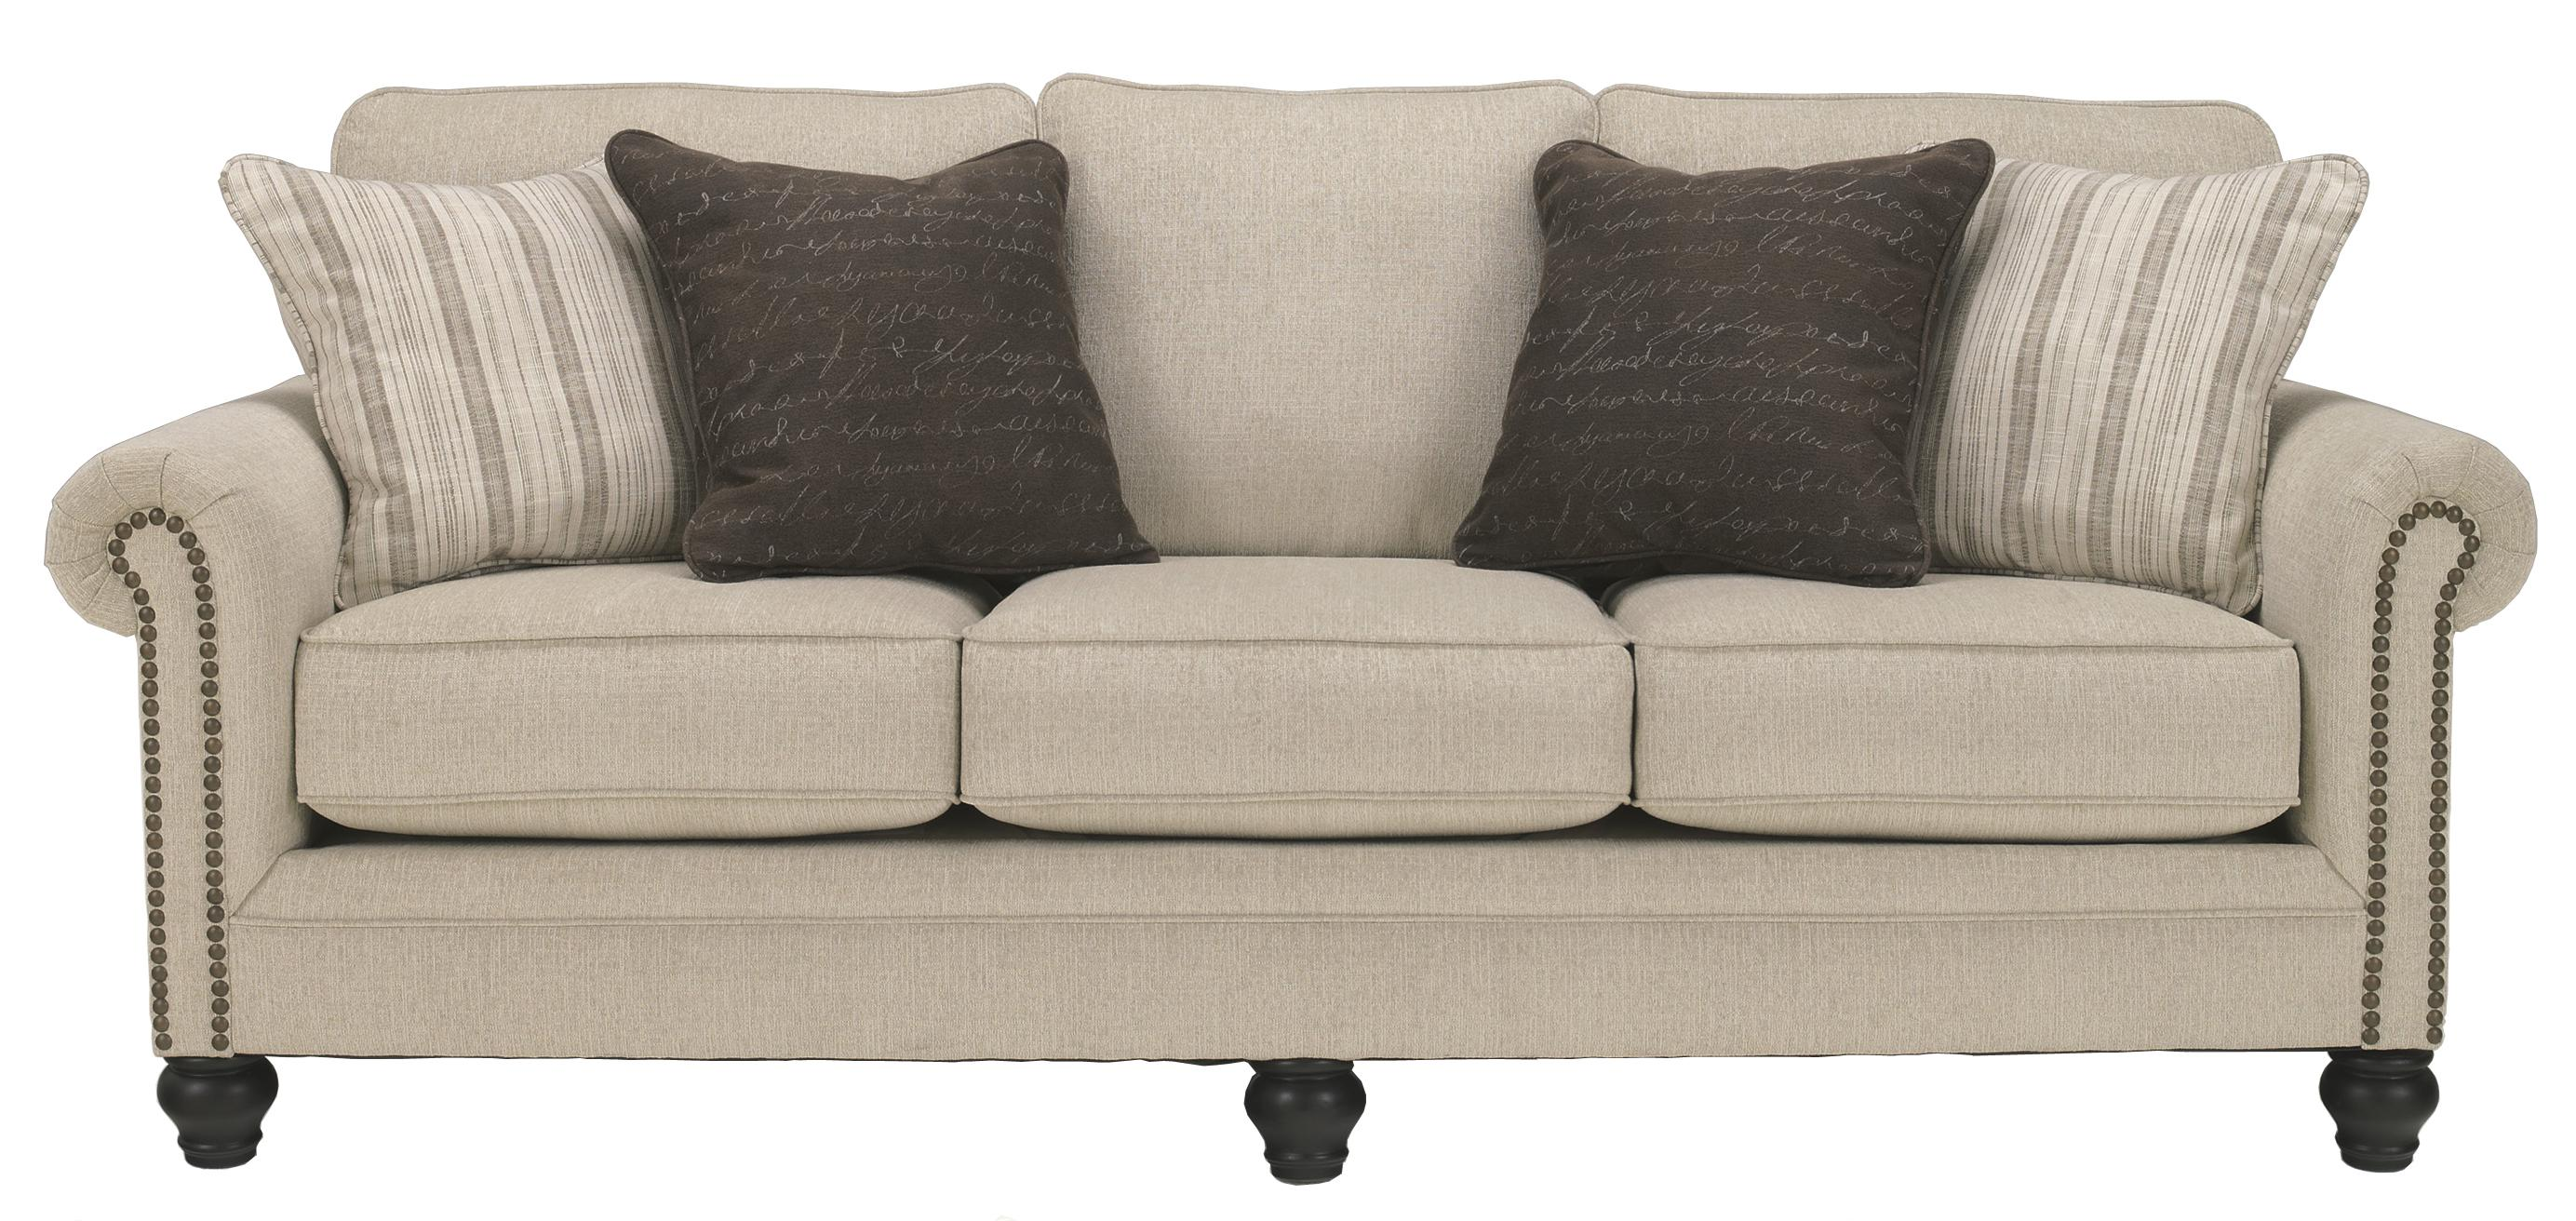 Transitional Sofa with Rolled Arms with Nail Head Trim by